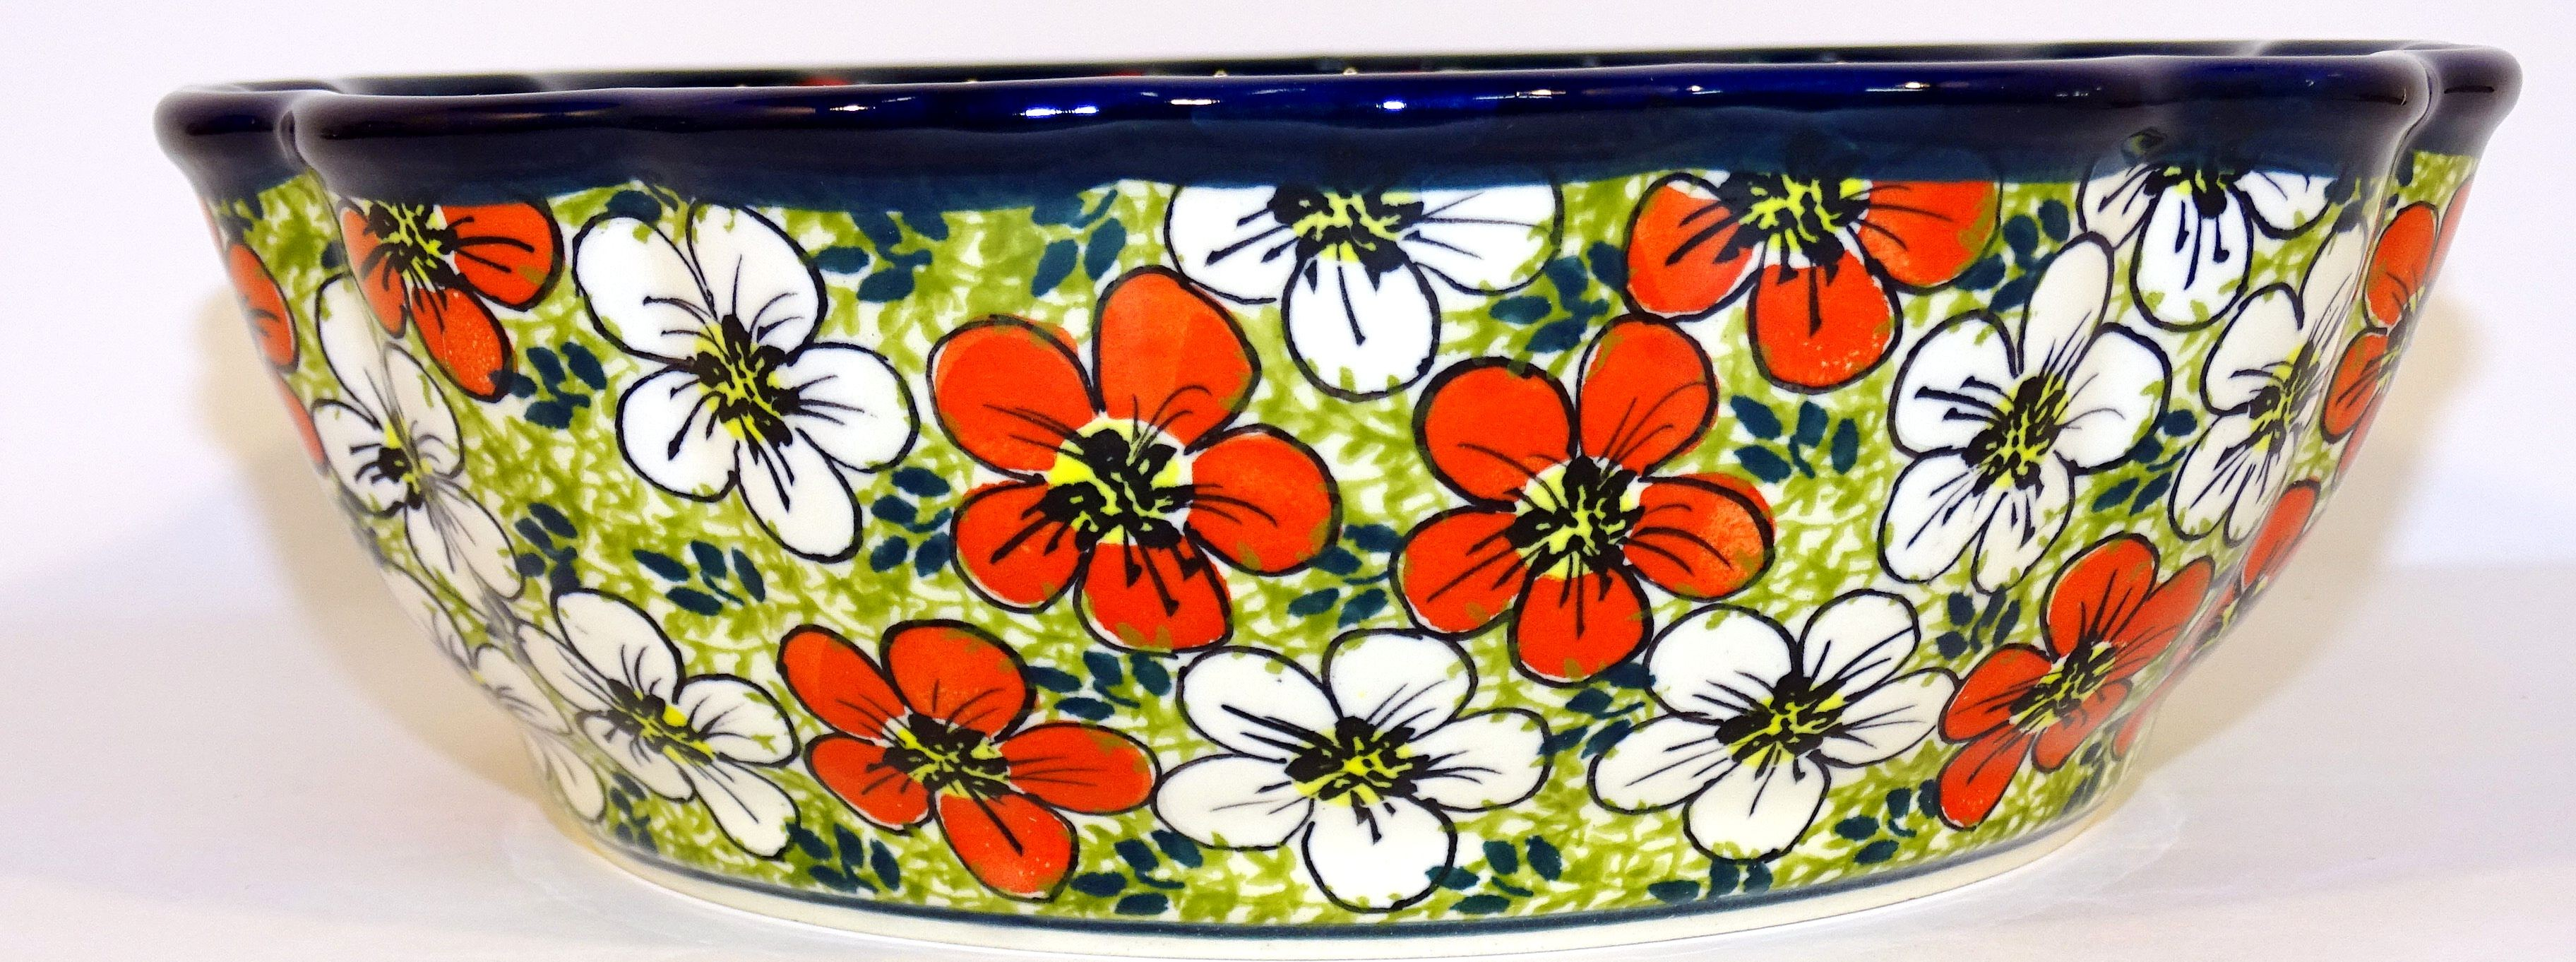 Polish Pottery RED BACOPA Scalloped Stoneware Serving Bowls | UNIKAT